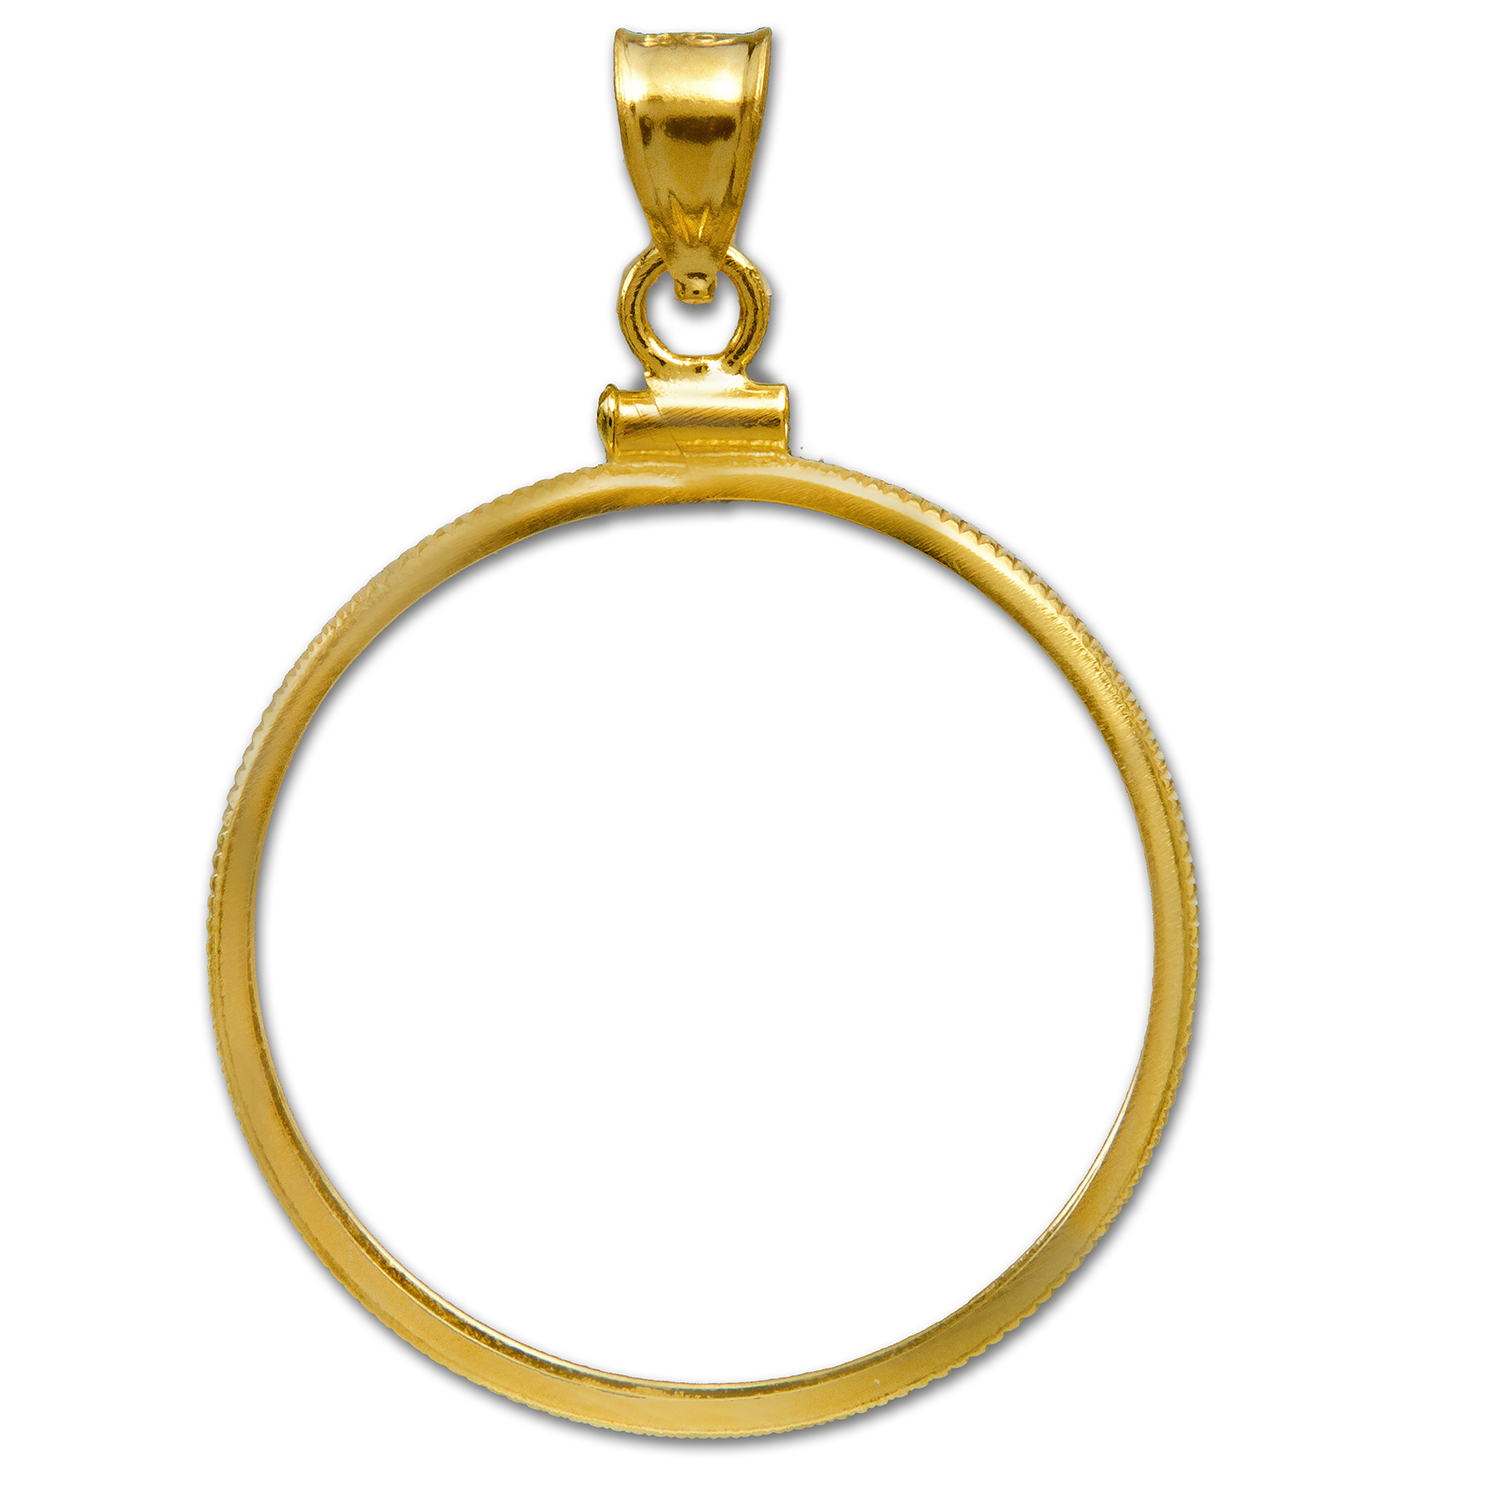 14K Gold Screw-Top Plain-Front Coin Bezel ($10 U.S. Gold)